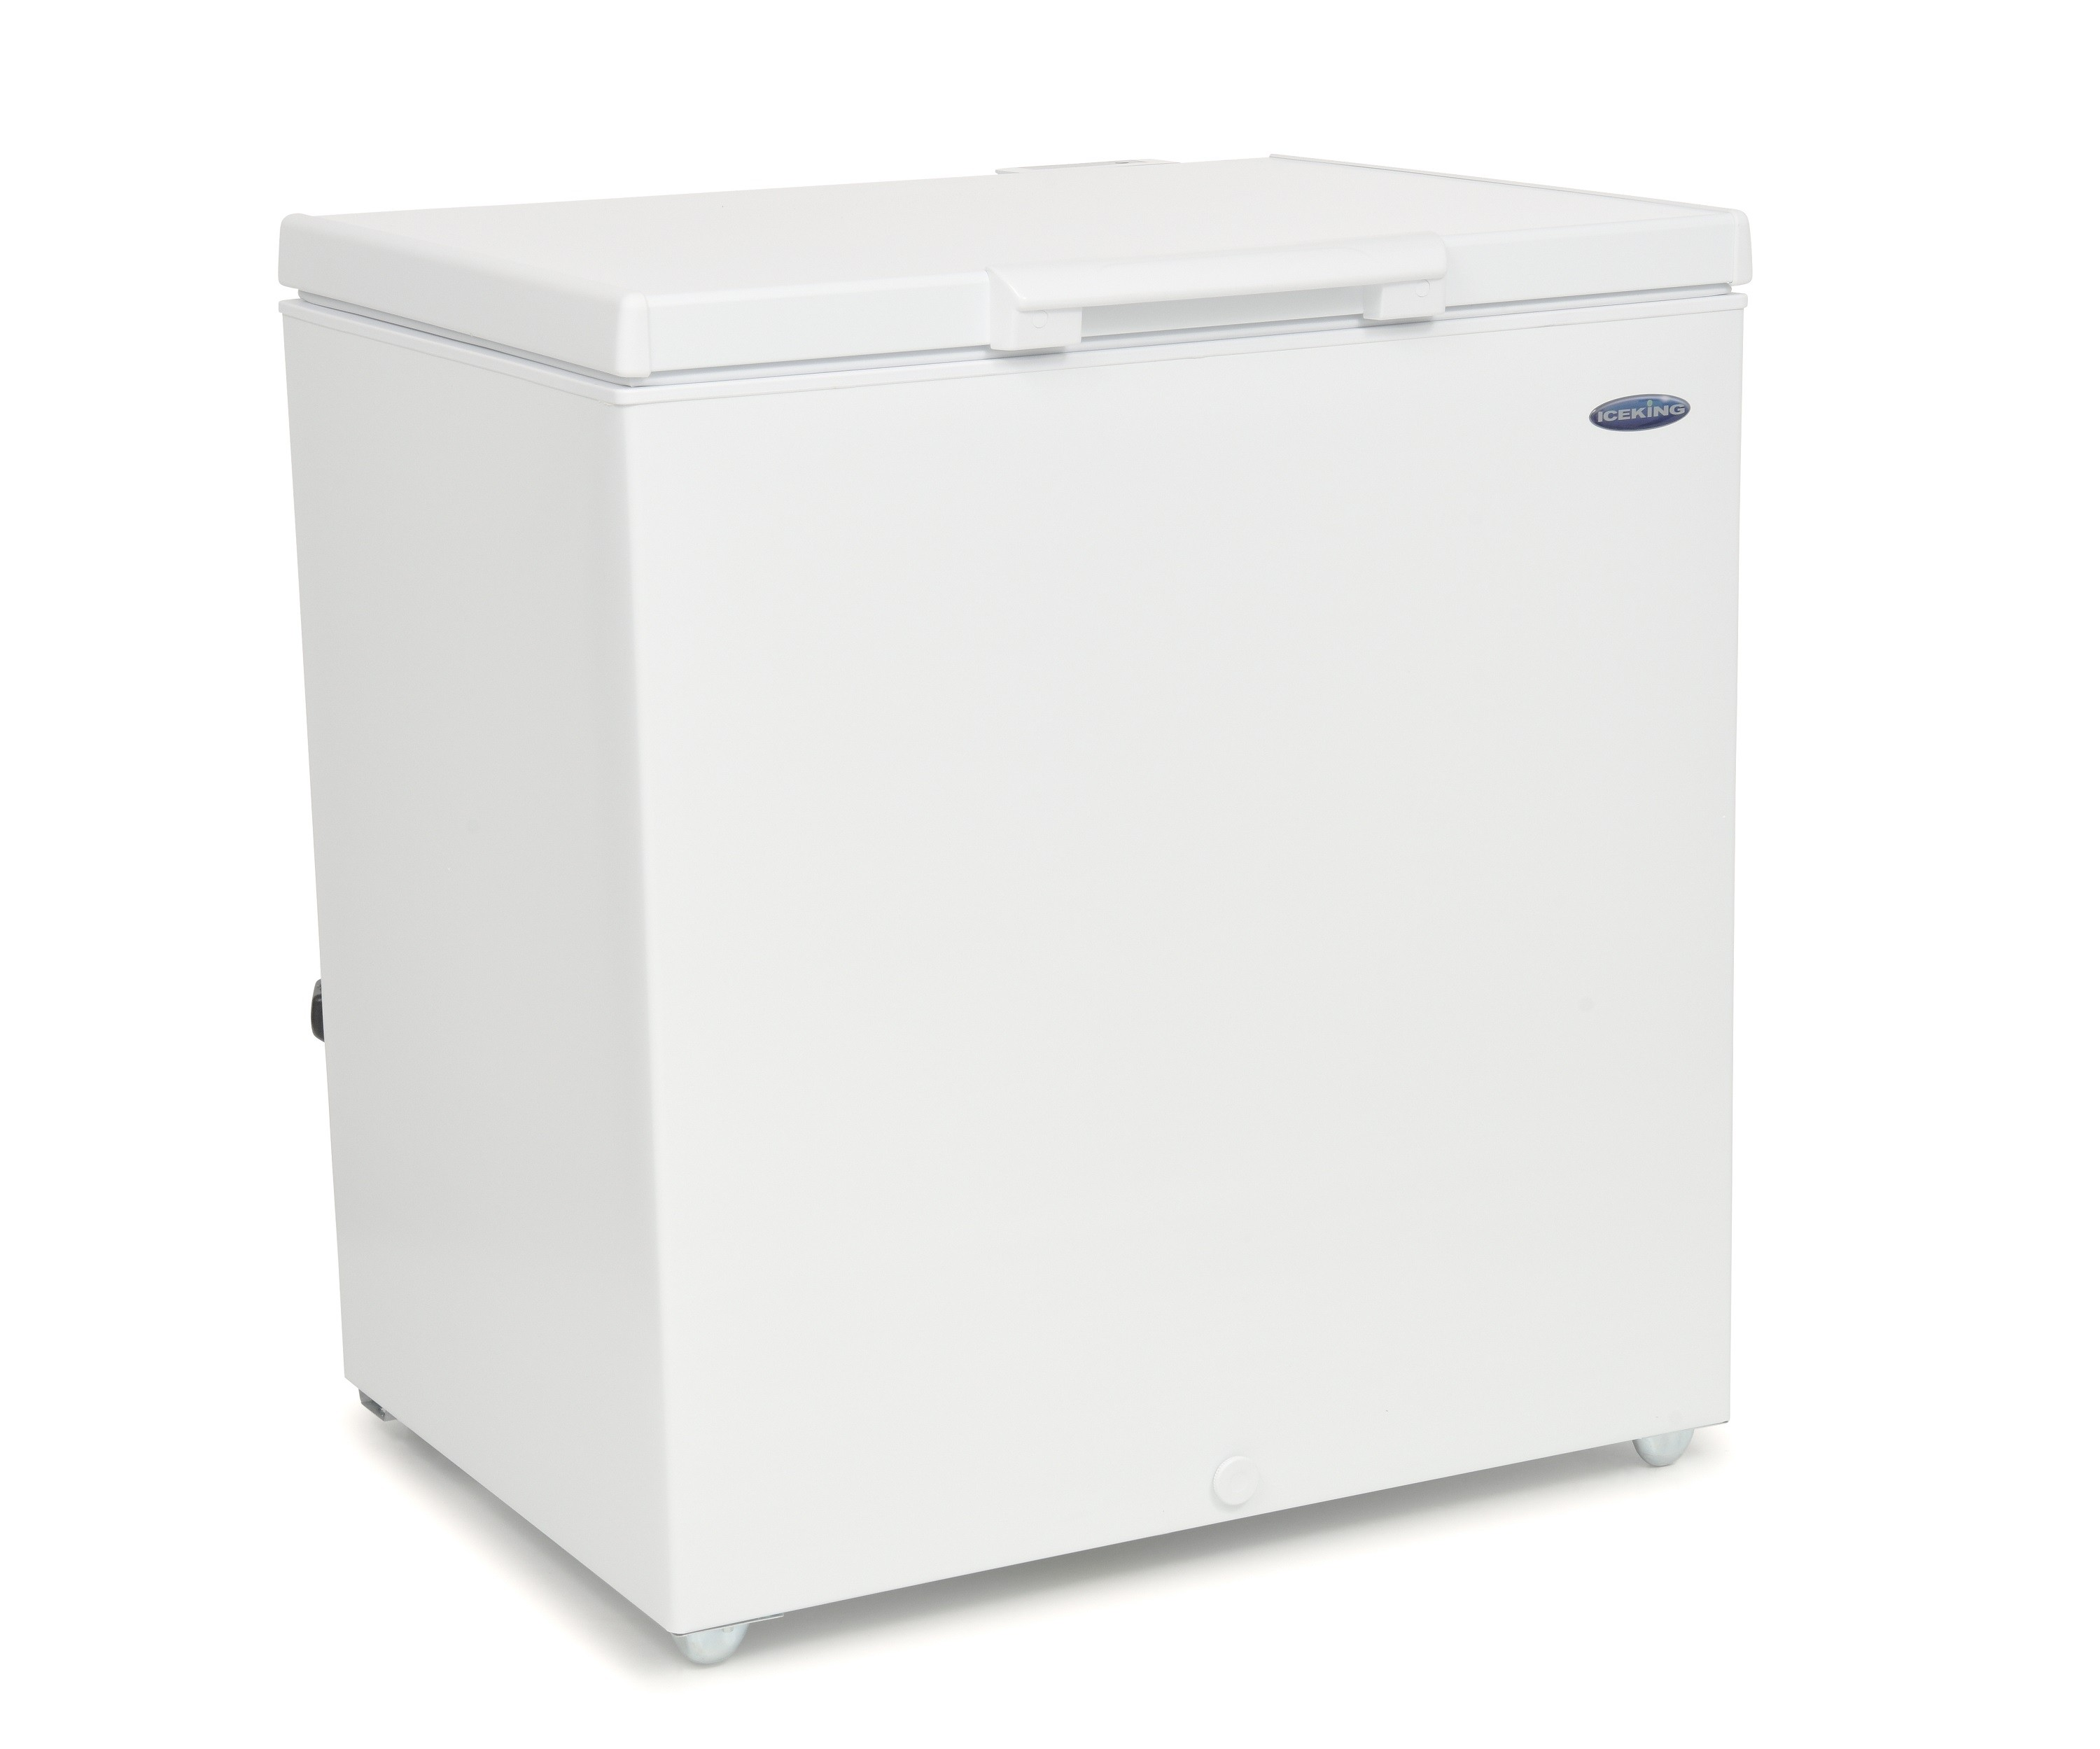 Ice King CF202W Ice King 202 Litre Chest Freezer In White